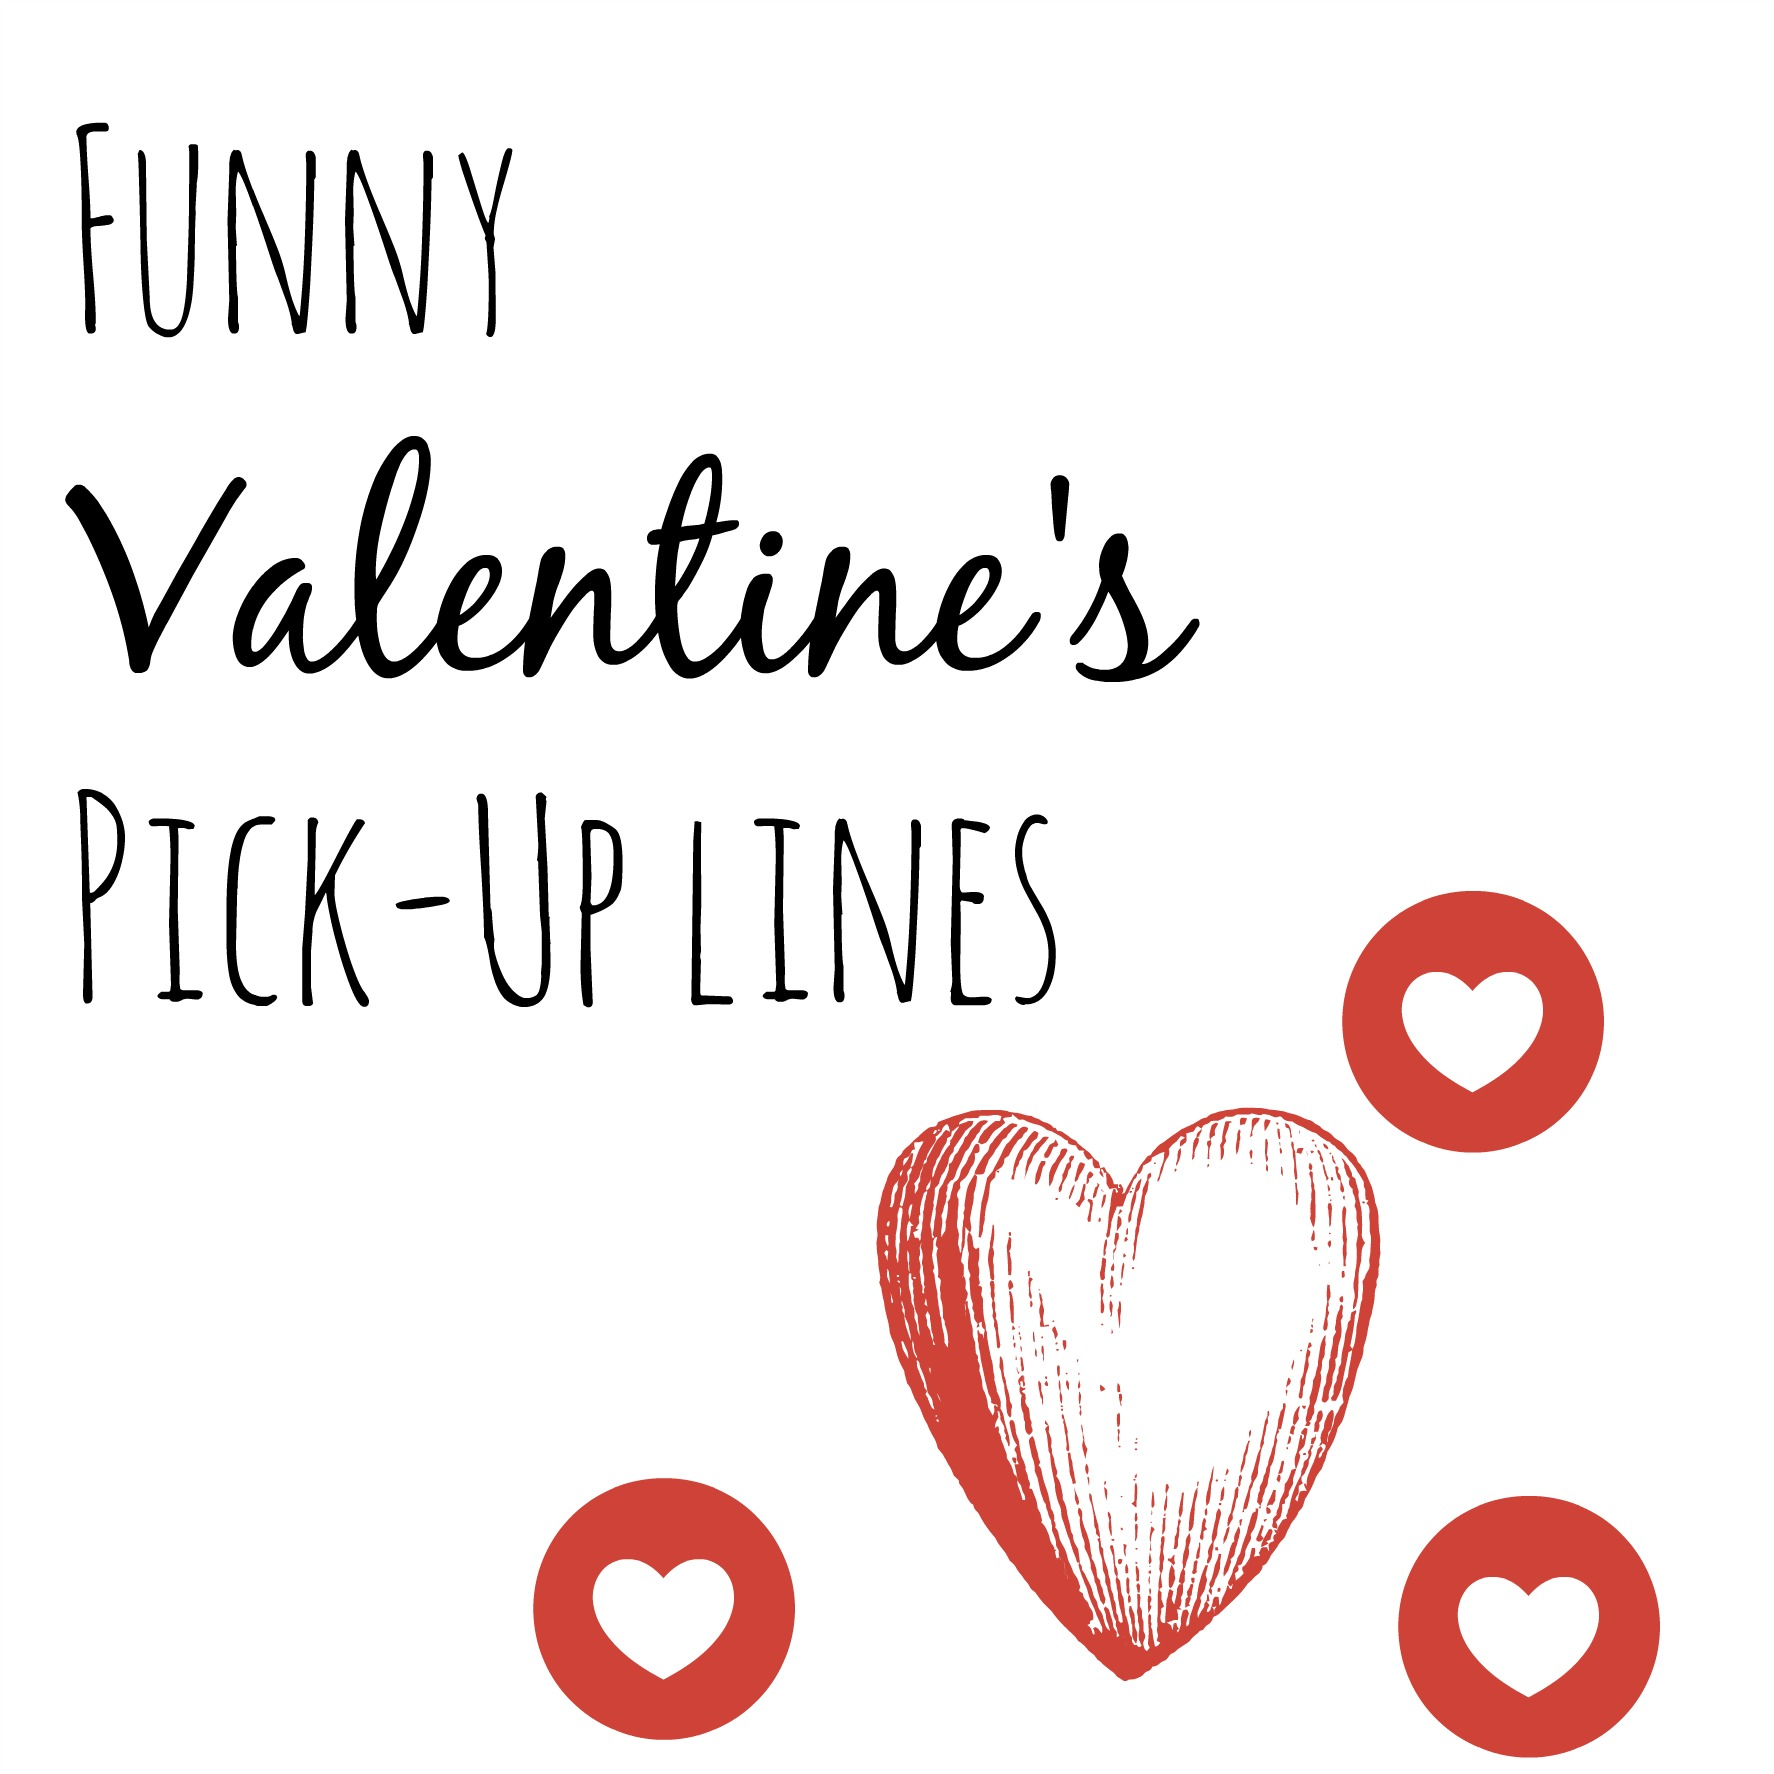 Funny Valentine's Pick-up Lines – Pursuit of Functional Home